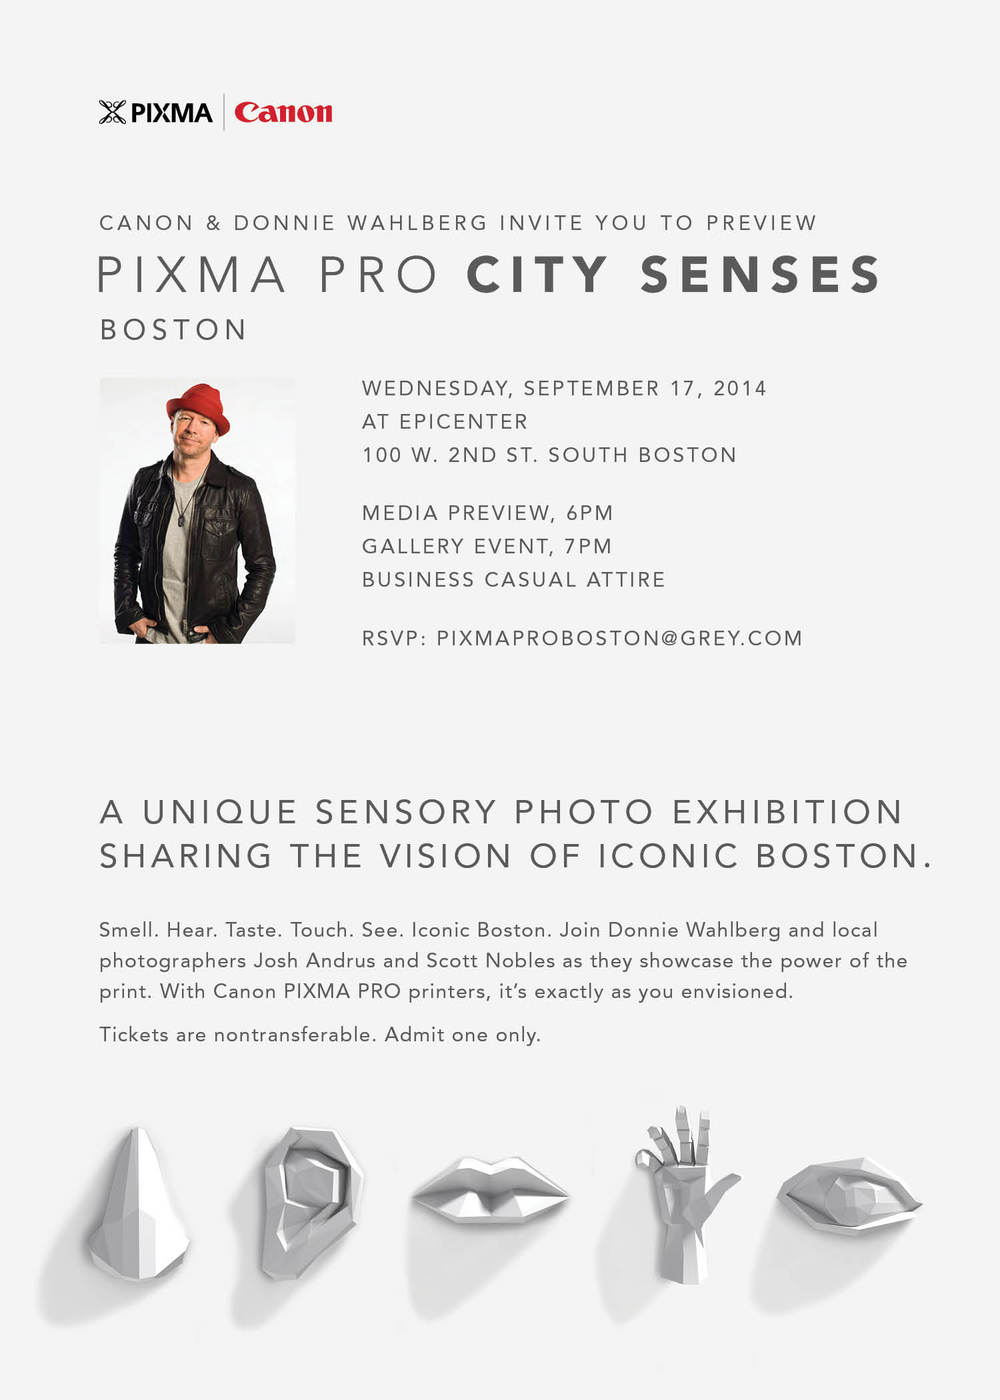 canon-pixma-pro-city-senses-gallery-event-in-boston-ma-on-91714_15746606567_o.jpg